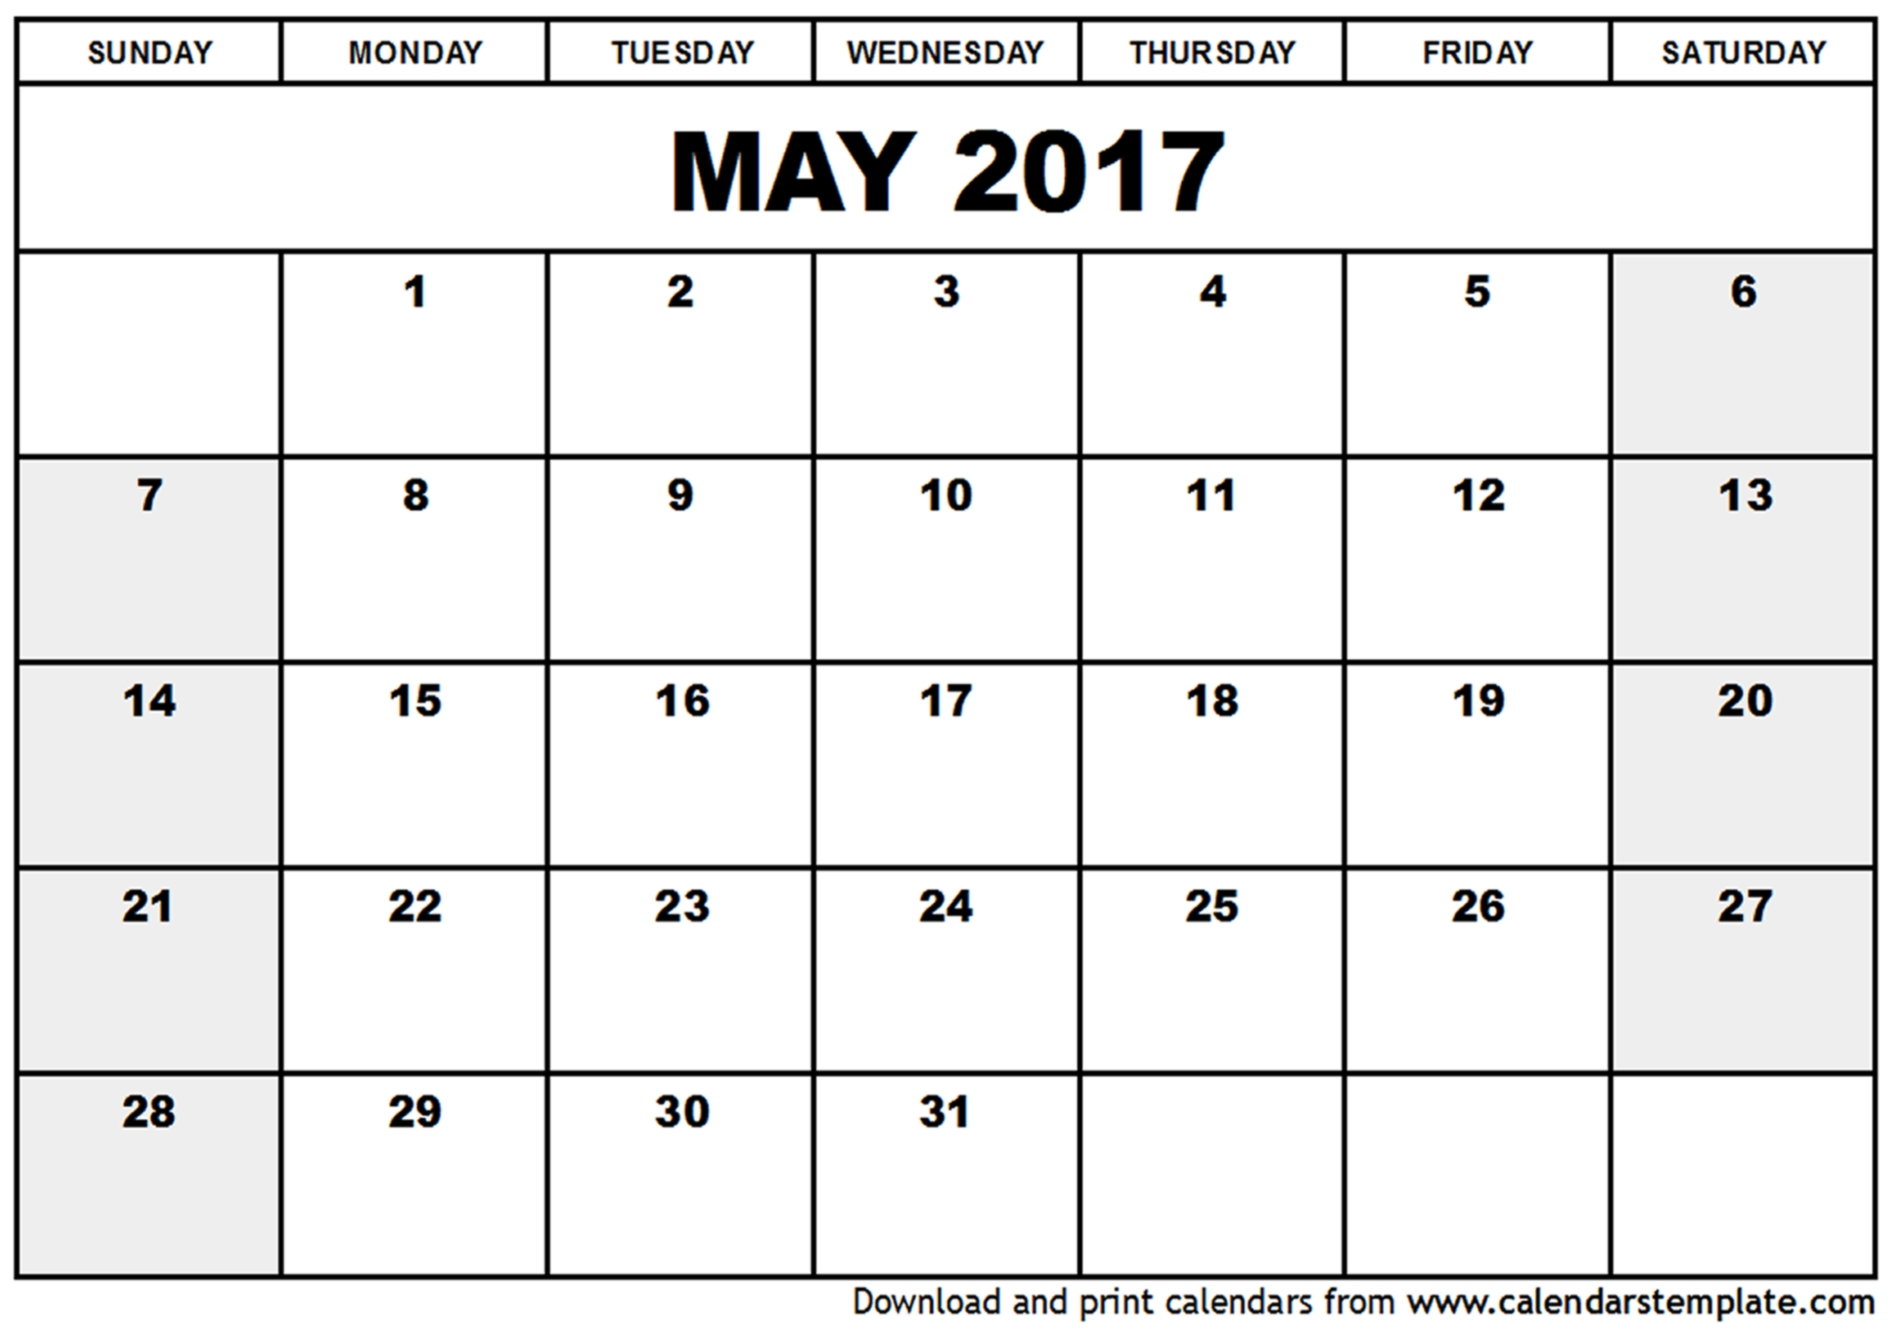 Free Printable Calendars 2017 These Calendar Templates Are Also 89uj